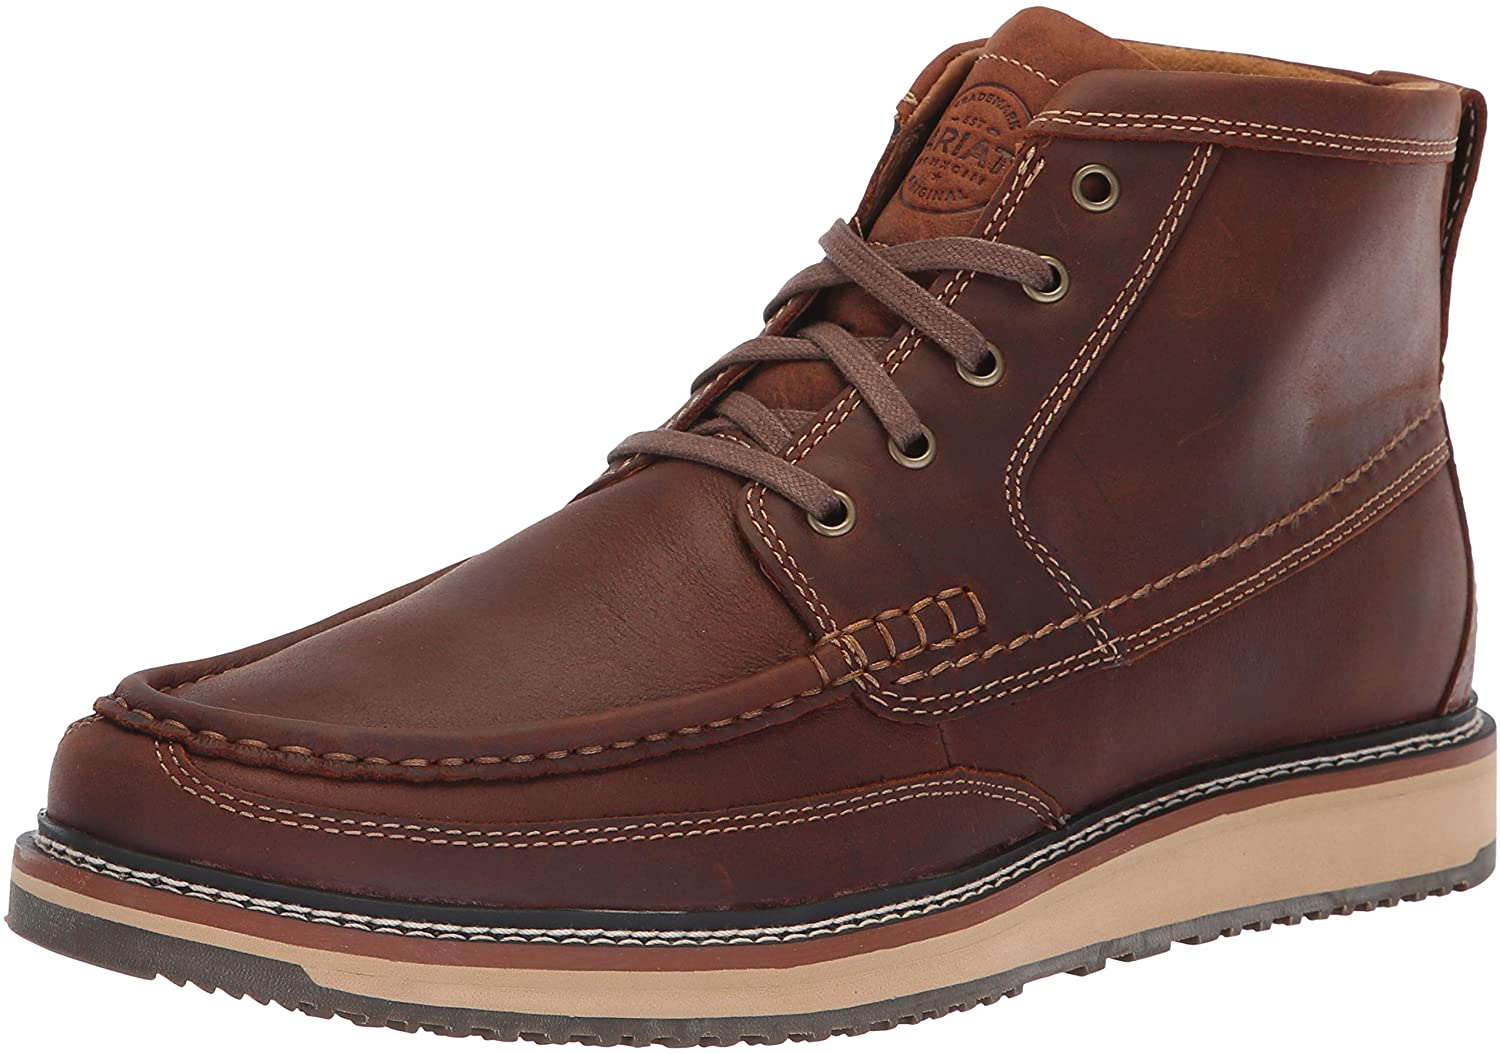 Ariat Lookout Attention brand Boot - Super Special SALE held Men's Lace-Up Bo Moc Leather Toe Round